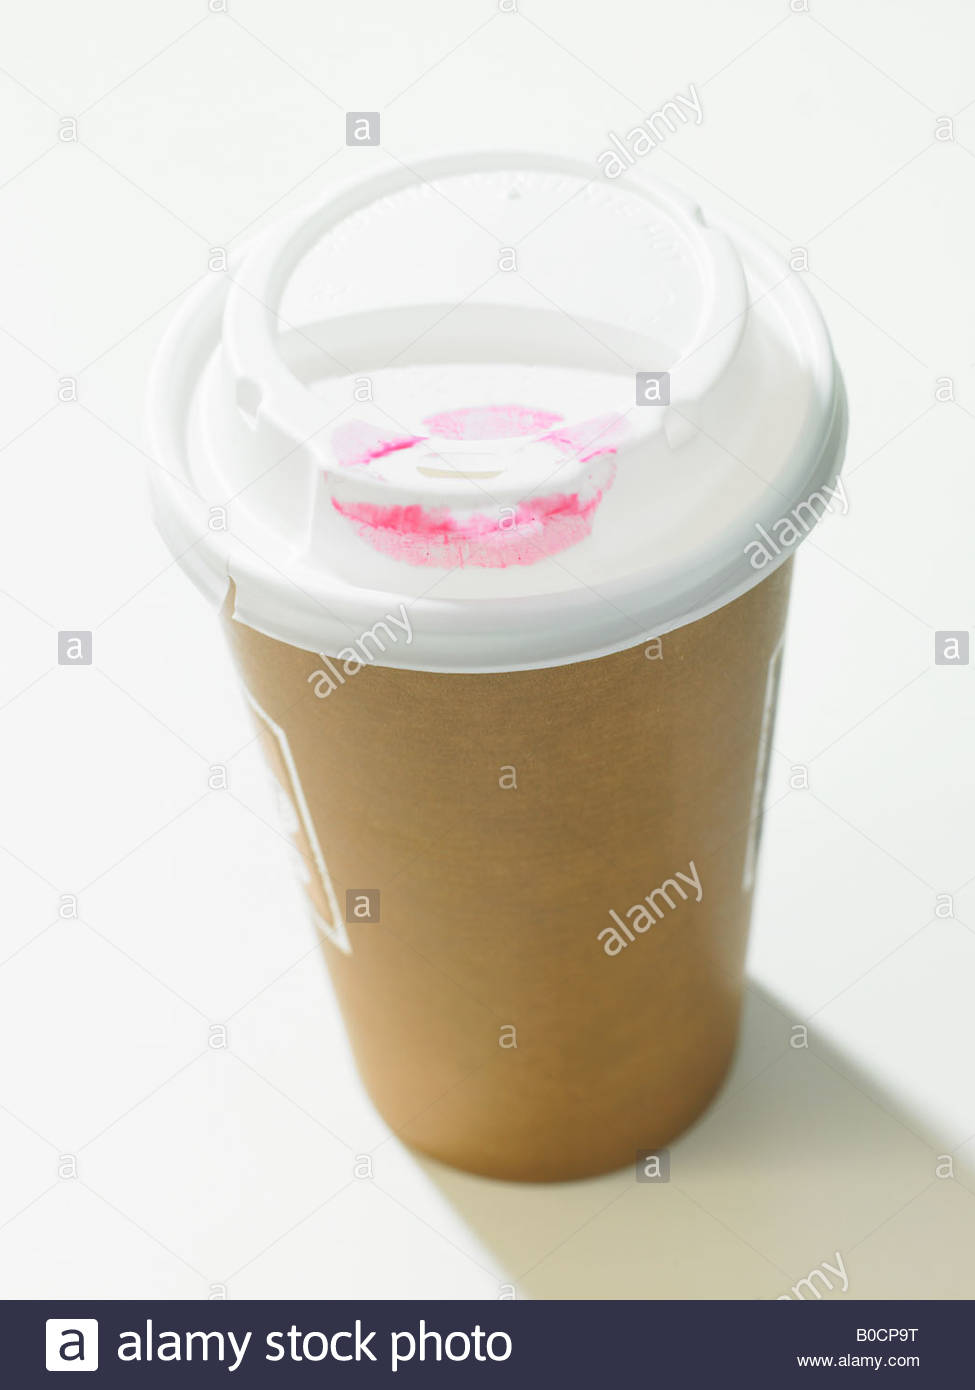 Lipstick smudge on coffee cup lid - Stock Image